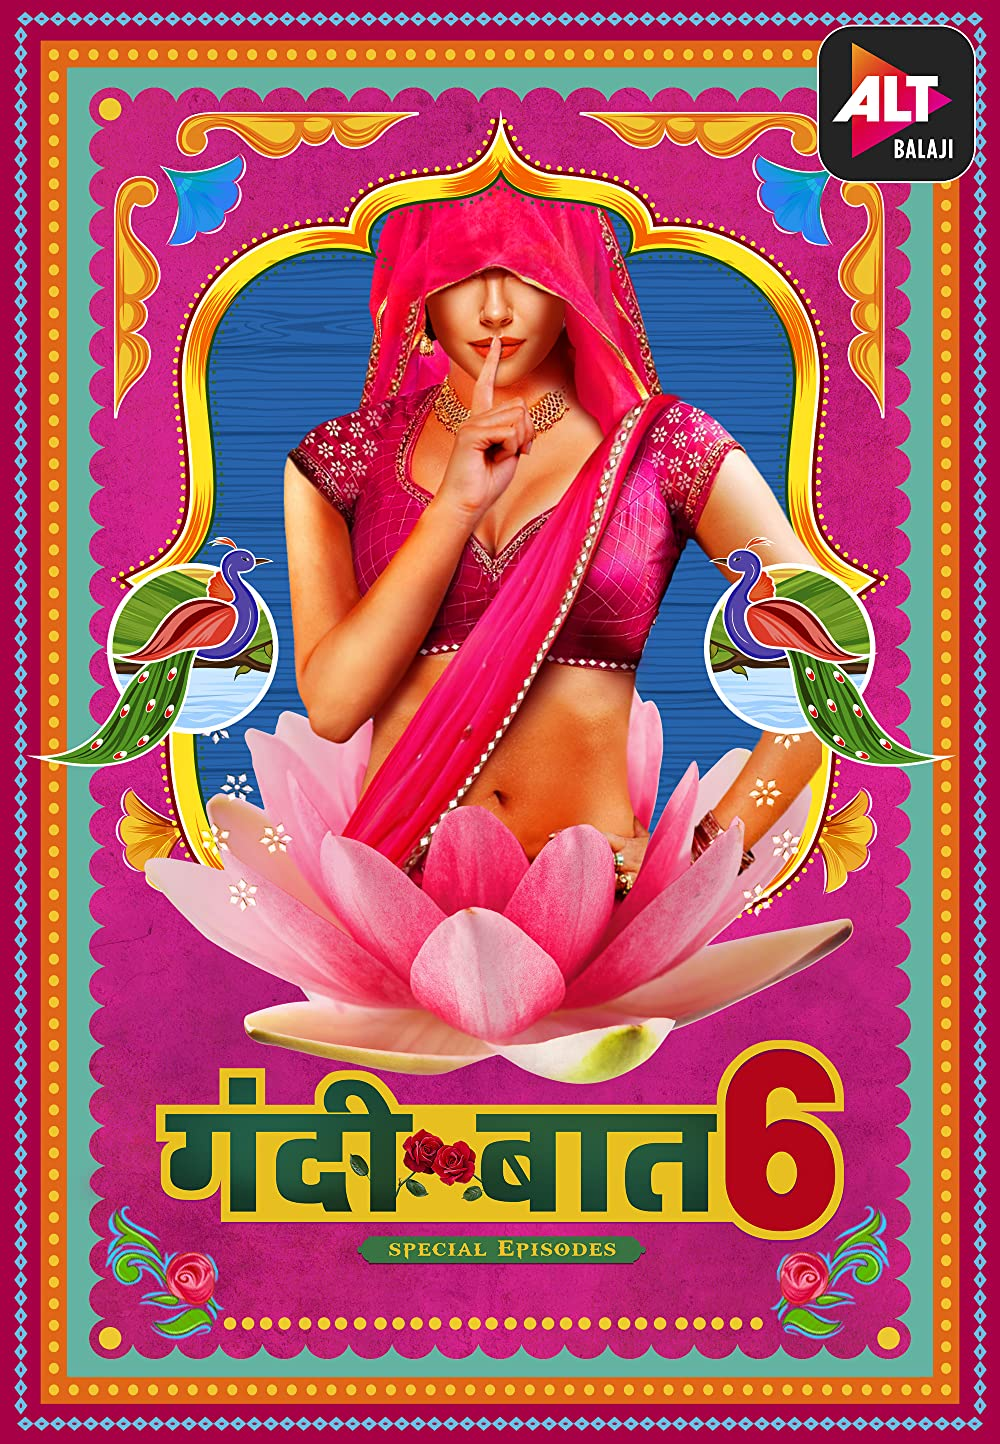 18+ Gandii Baat Season 6 Ep 1-2 (2021) Hindi ALTBalaji Original Web Series 1080p HDRip 1.2GB